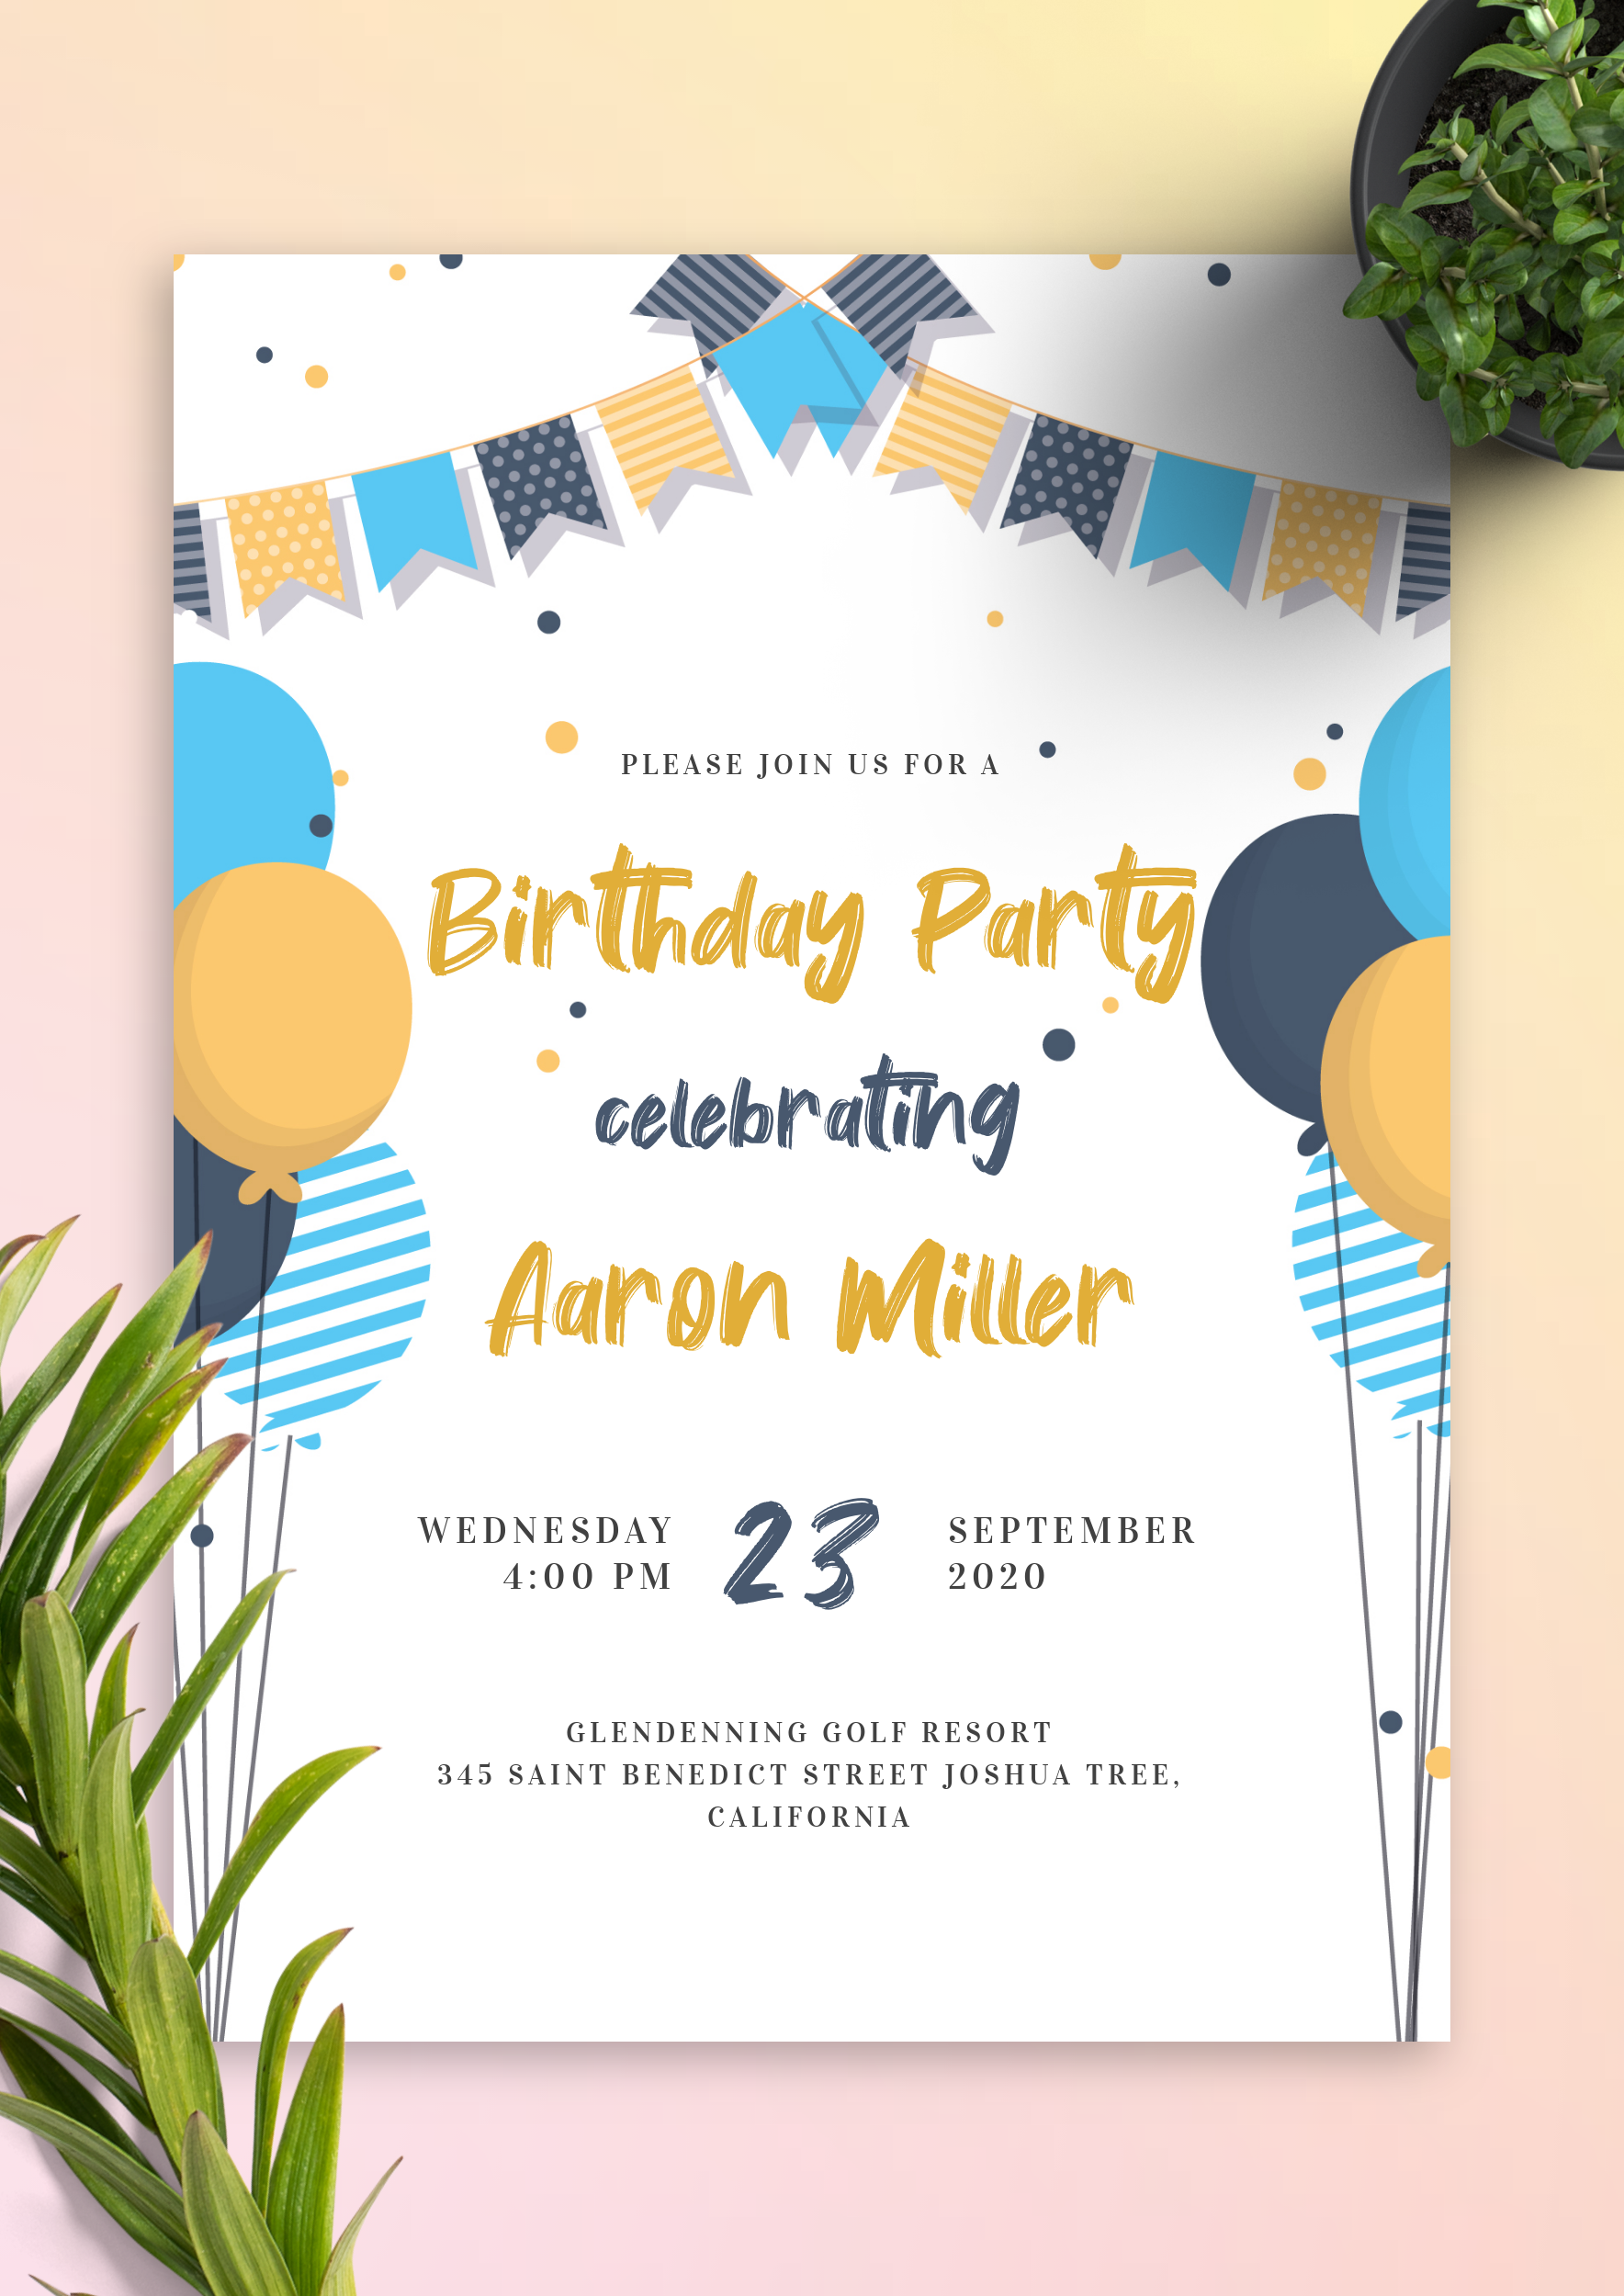 Birthday Invitation Template With A Blue And Yellow Color Design Feat In 2021 Free Birthday Invitation Templates Birthday Invitation Card Template Birthday Invitations